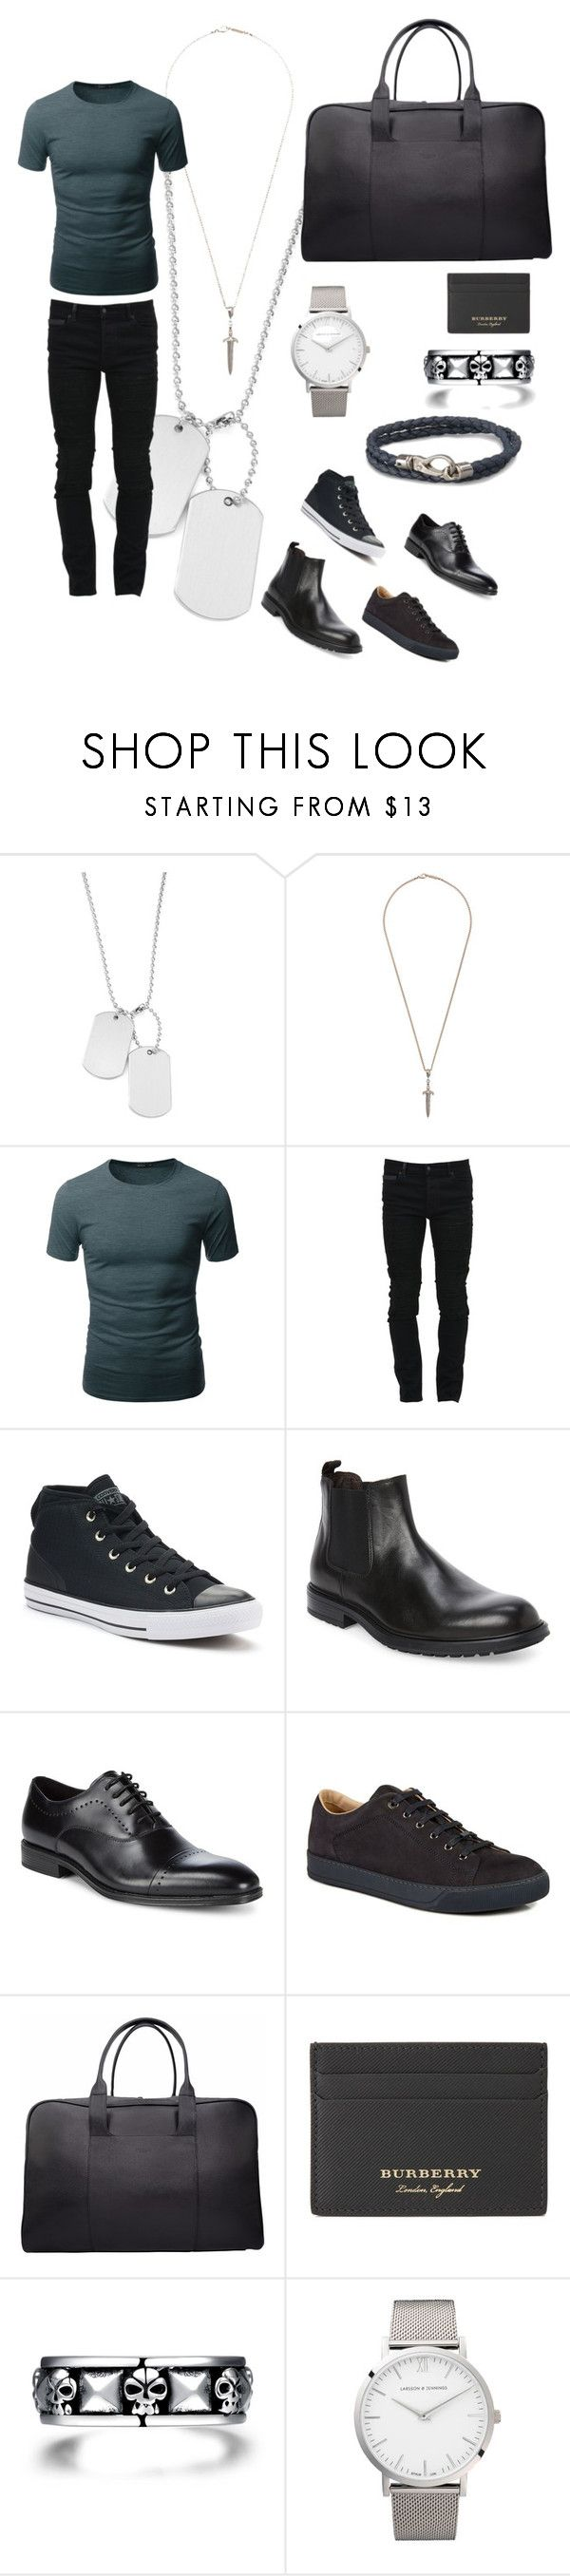 """Not afraid of the dark"" by chloeeve ❤ liked on Polyvore featuring Variations, Roman Paul, Doublju, Marcelo Burlon, Converse, Bruno Magli, Kenneth Cole, Lanvin, Burberry and Larsson & Jennings"